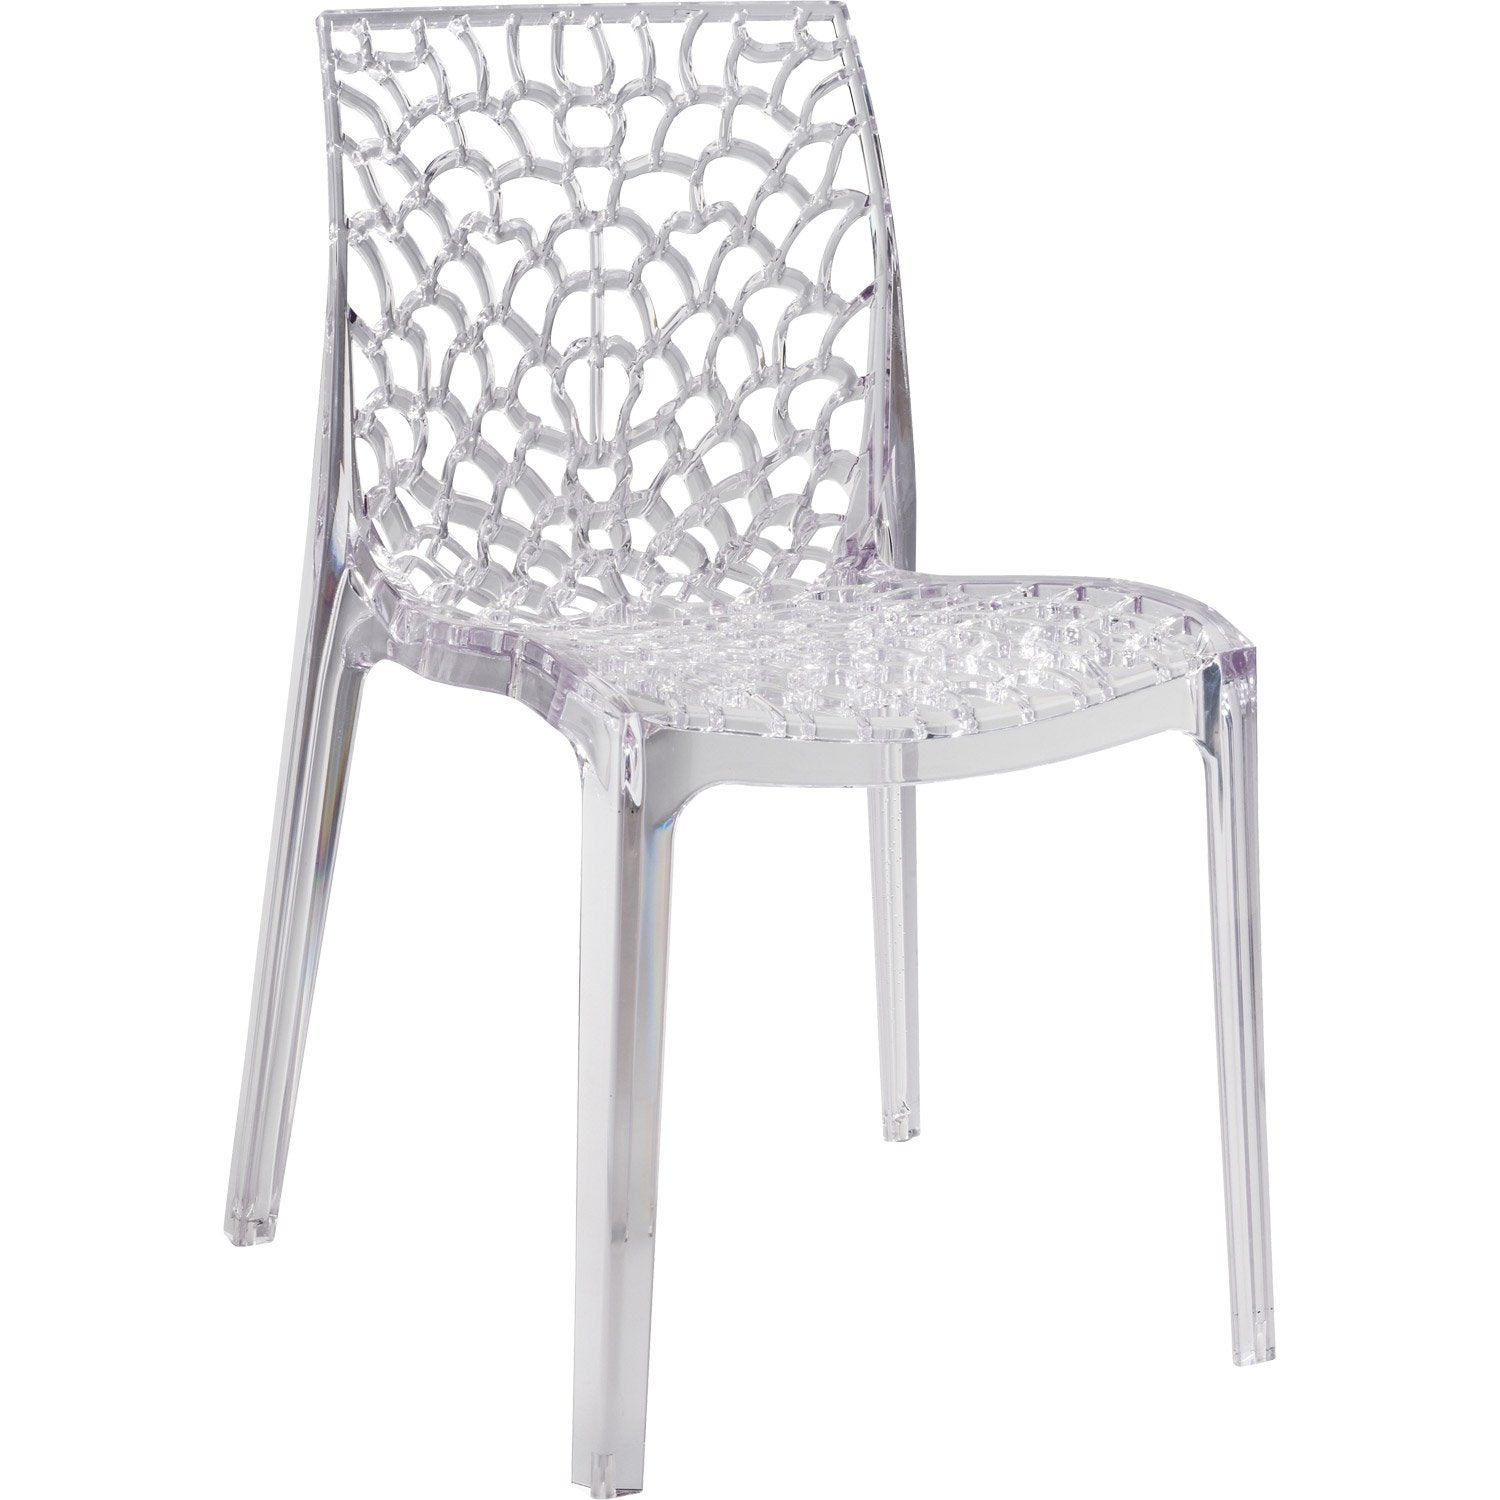 Chaise de jardin en polycarbonate grafik lux transparent for Chaise plastique exterieur